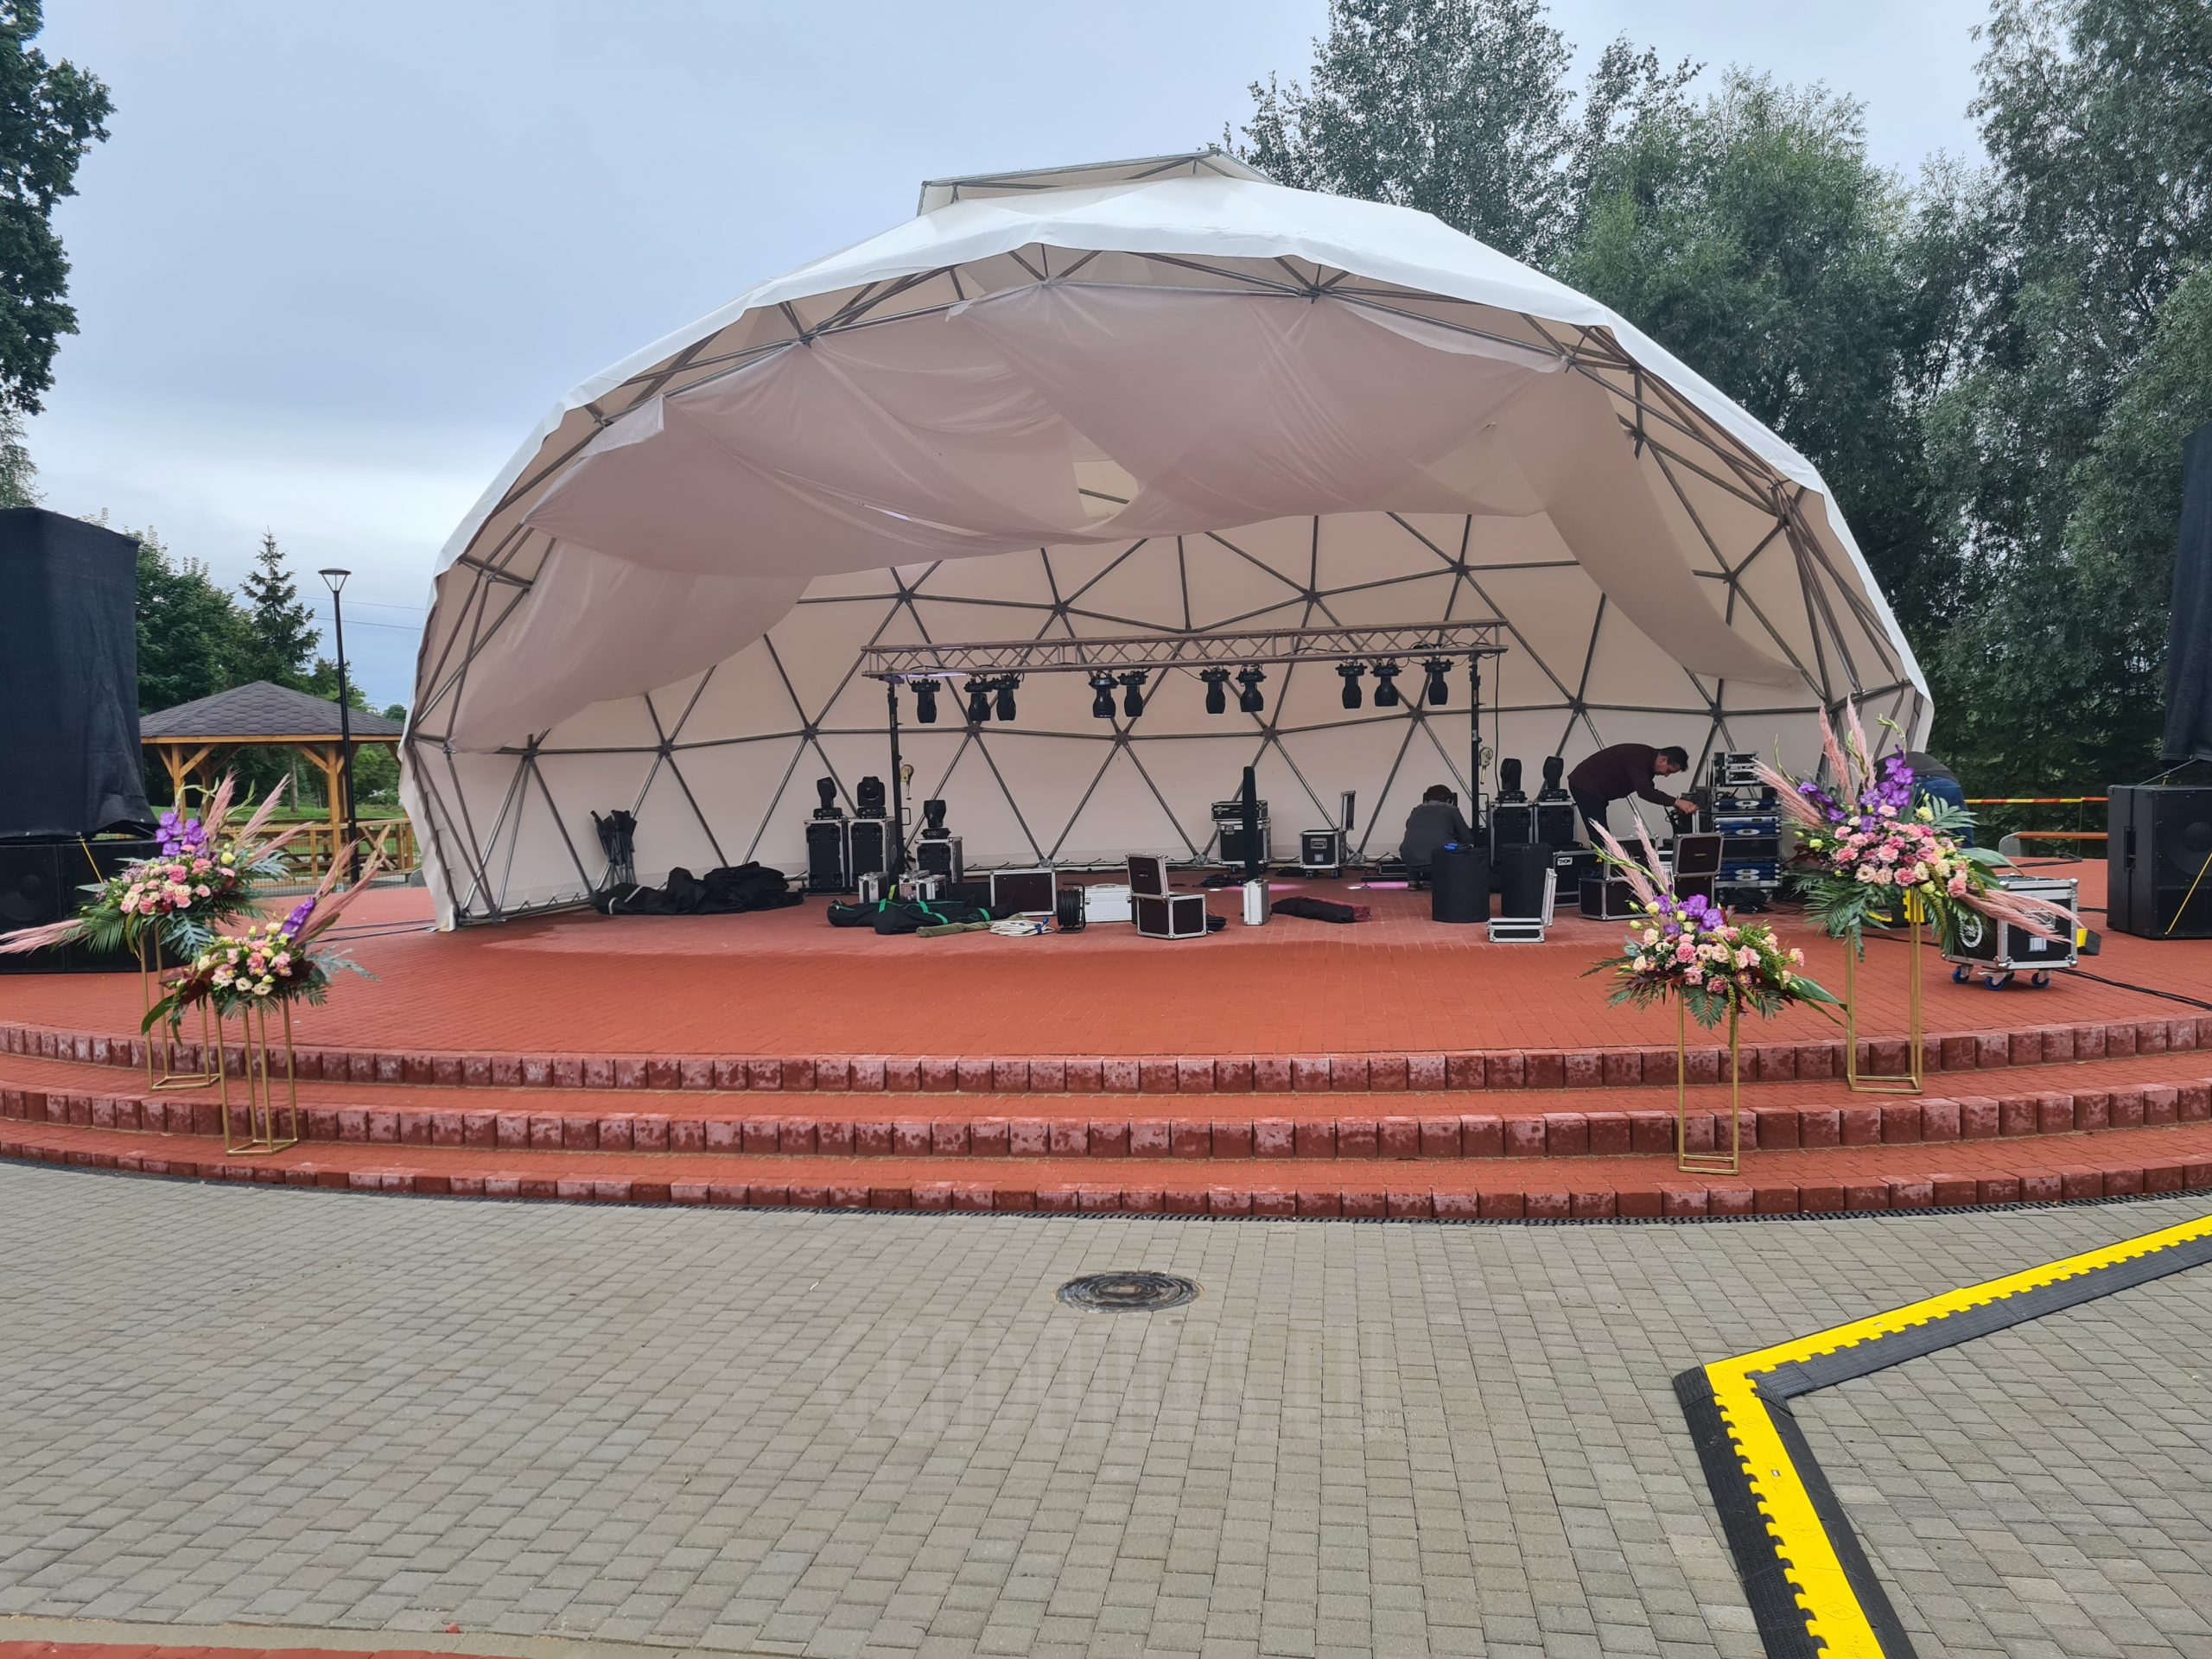 ⌀11m City stage for events in Pilviškės, Lithuania